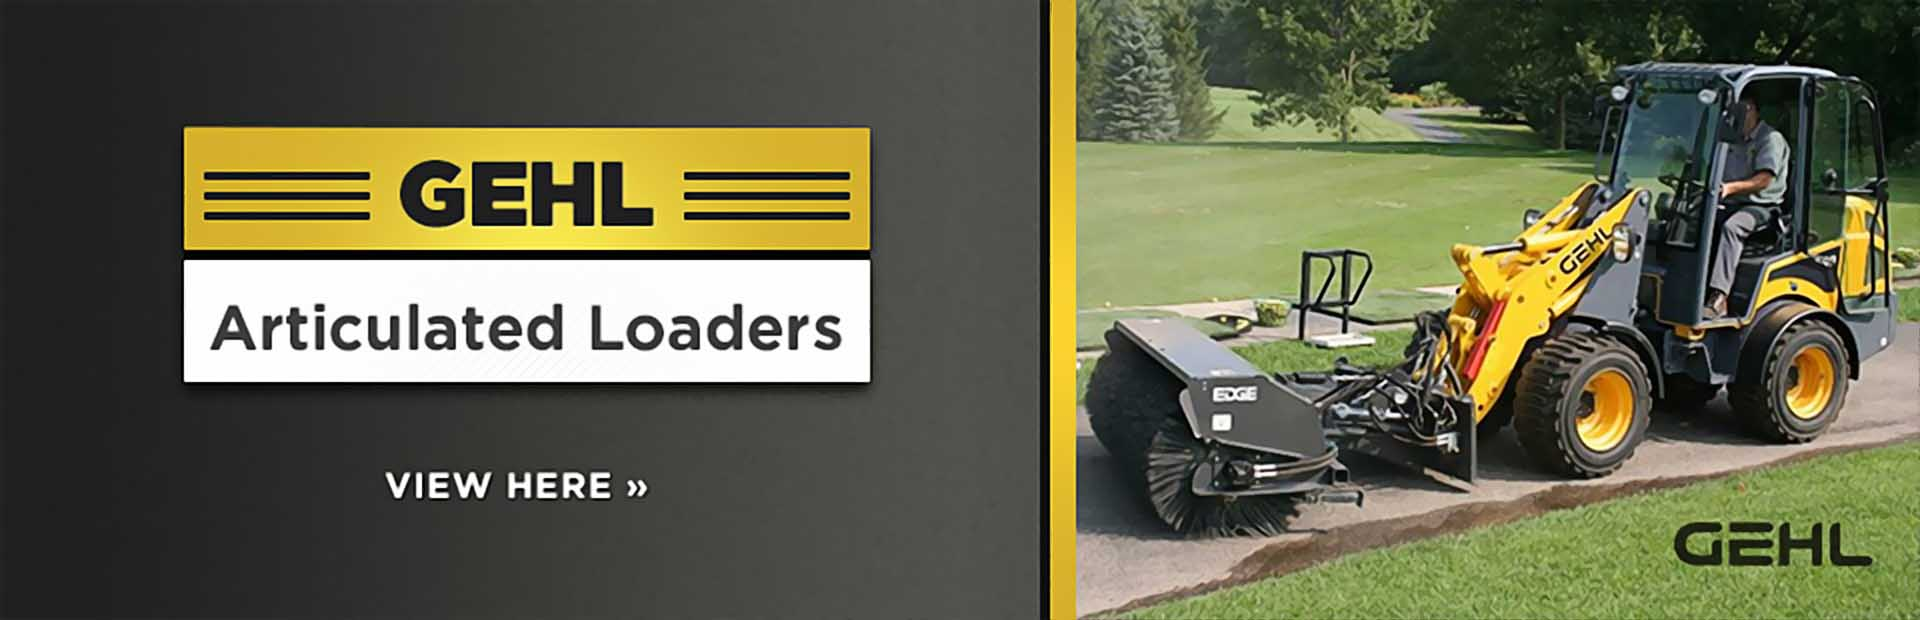 Gehl Articulated Loaders: Click here to view the models.